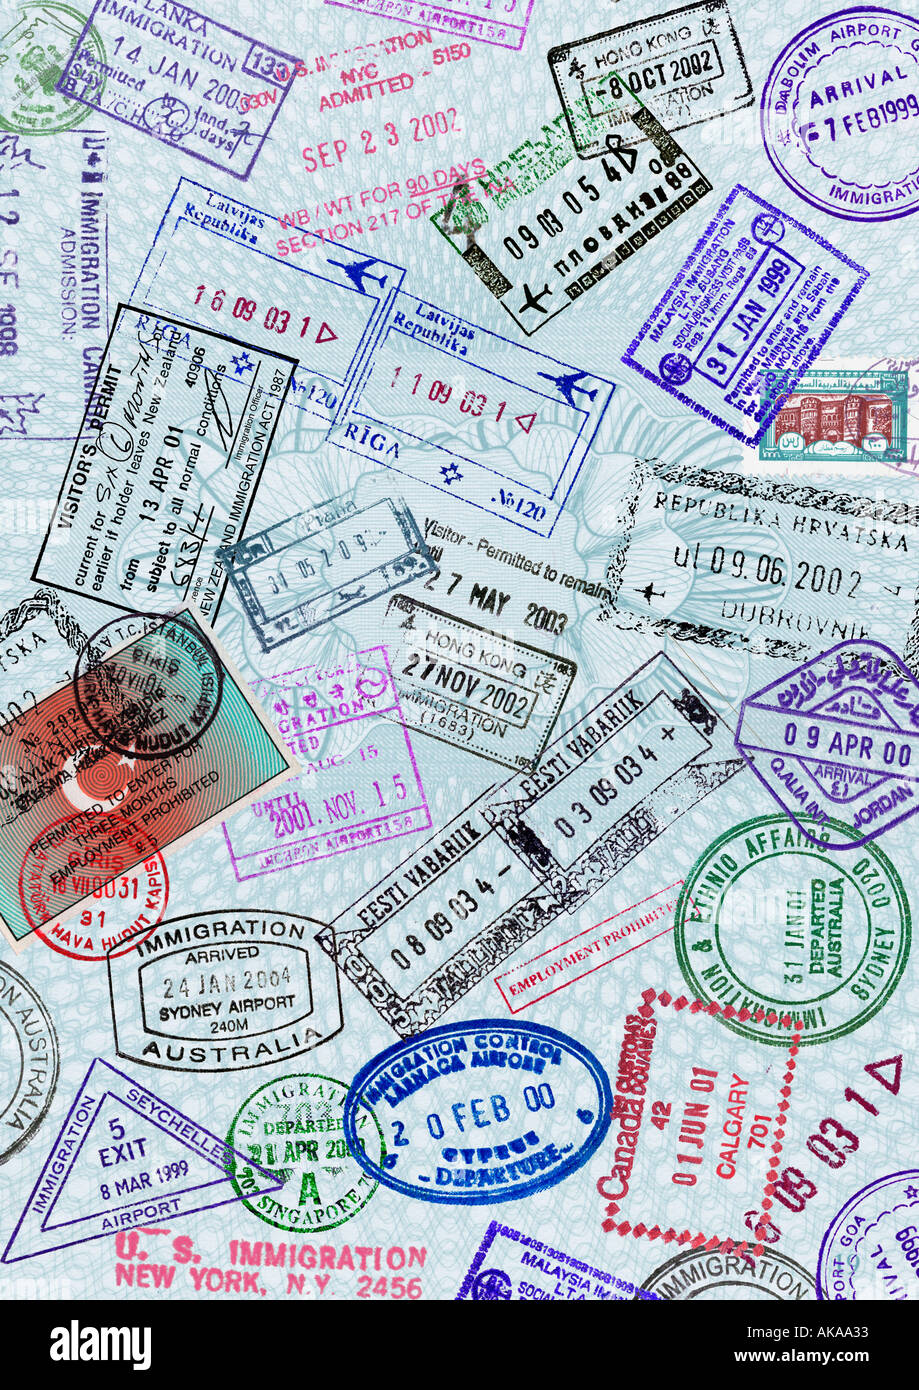 Passport Page Travel Immigration Visa stamp Montage - Stock Image